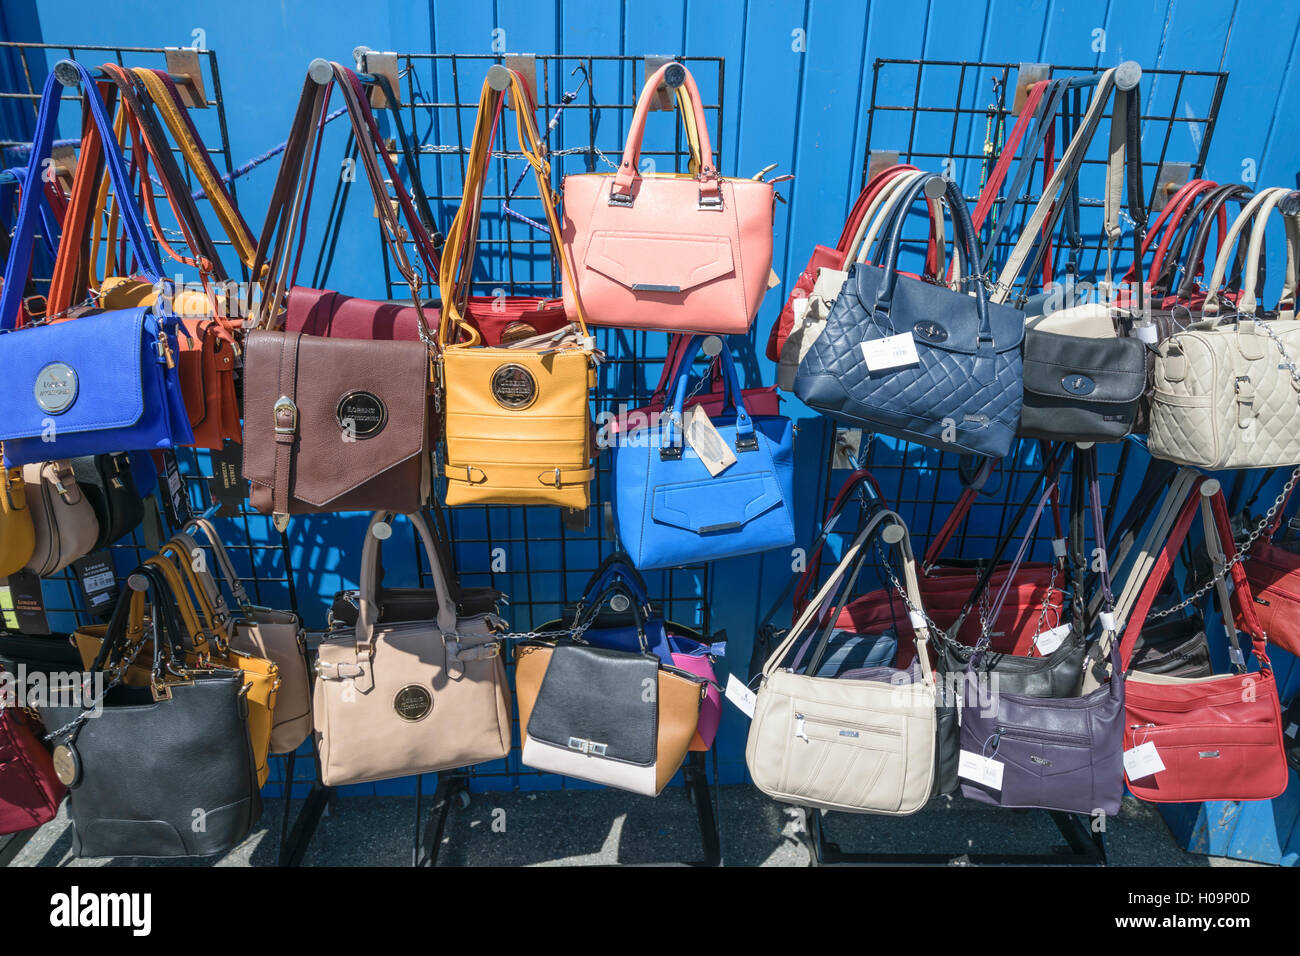 Ladies Handbags For Sale In Various Colours On Llandudno Pier In